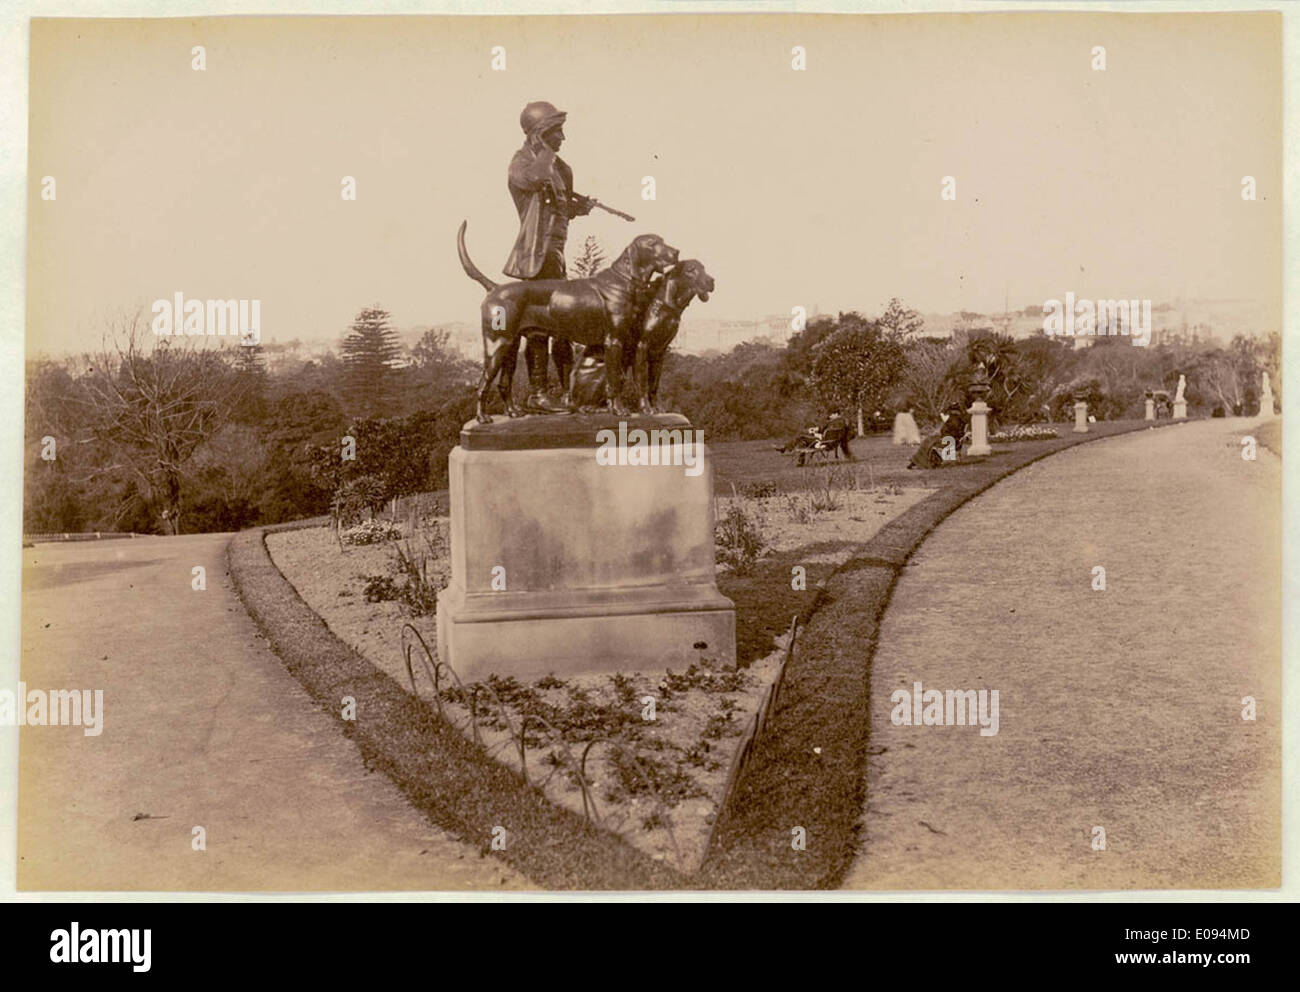 Botanical Gardens, Sydney, [showing Hunstman and Dogs sculpture] c. 1900-1910 Stock Photo